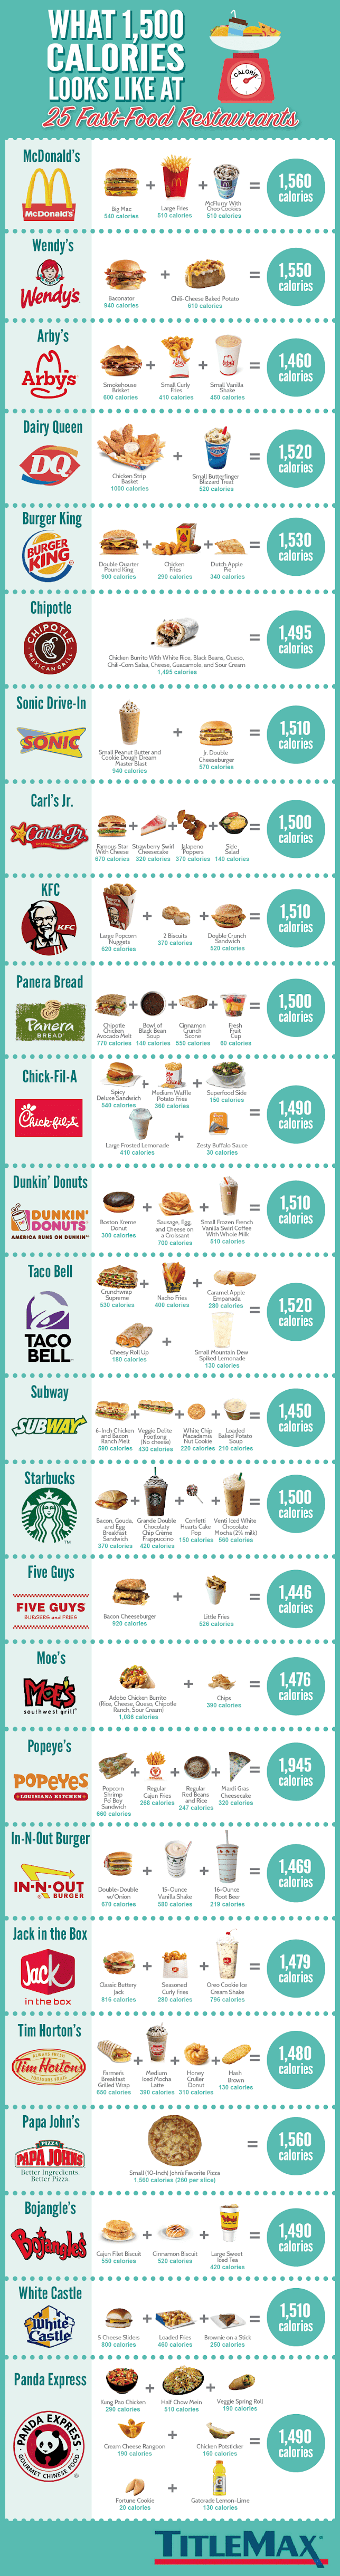 What 1,500 Calories Looks Like at 25 Fast Food Restaurants #infographic